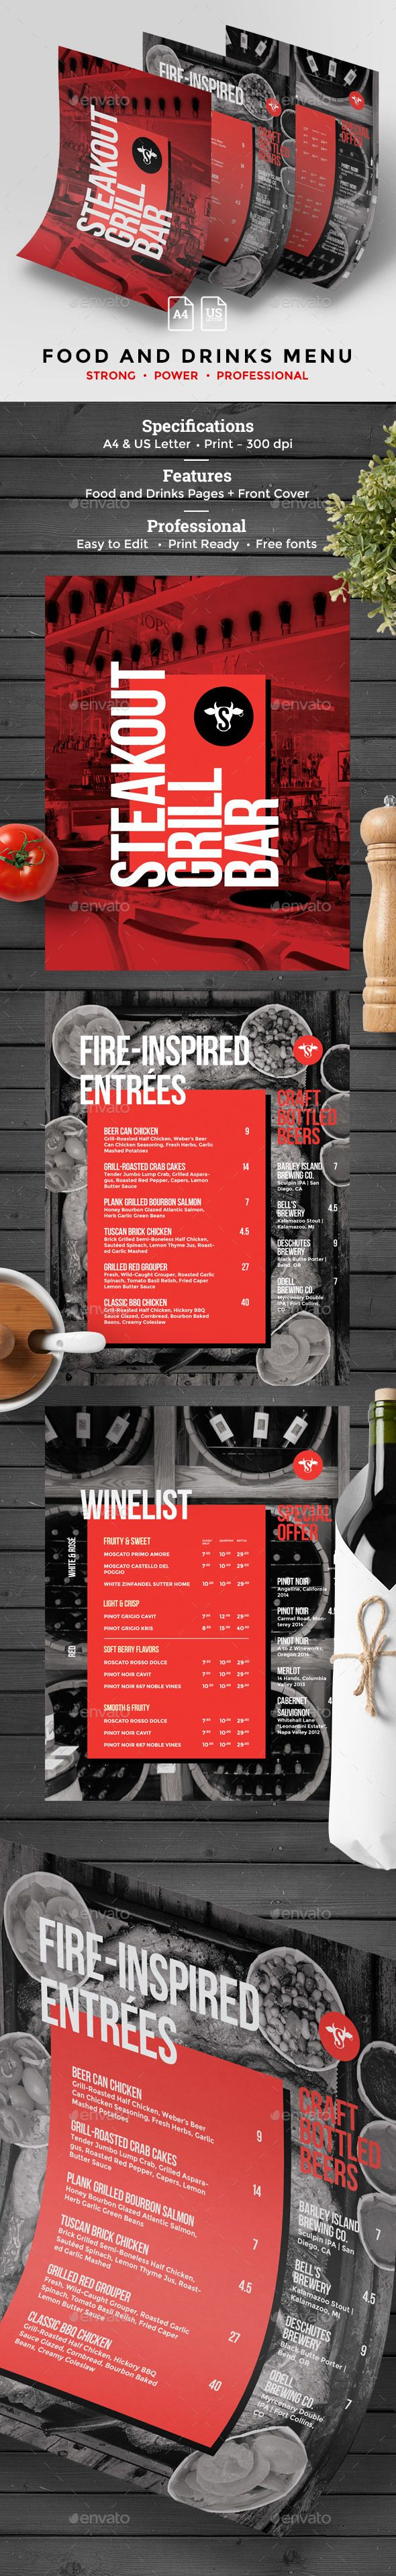 Restaurant Menu - Food Menus Print Templates Download here : https://graphicriver.net/item/restaurant-menu/19484150?s_rank=81&ref=Al-fatih